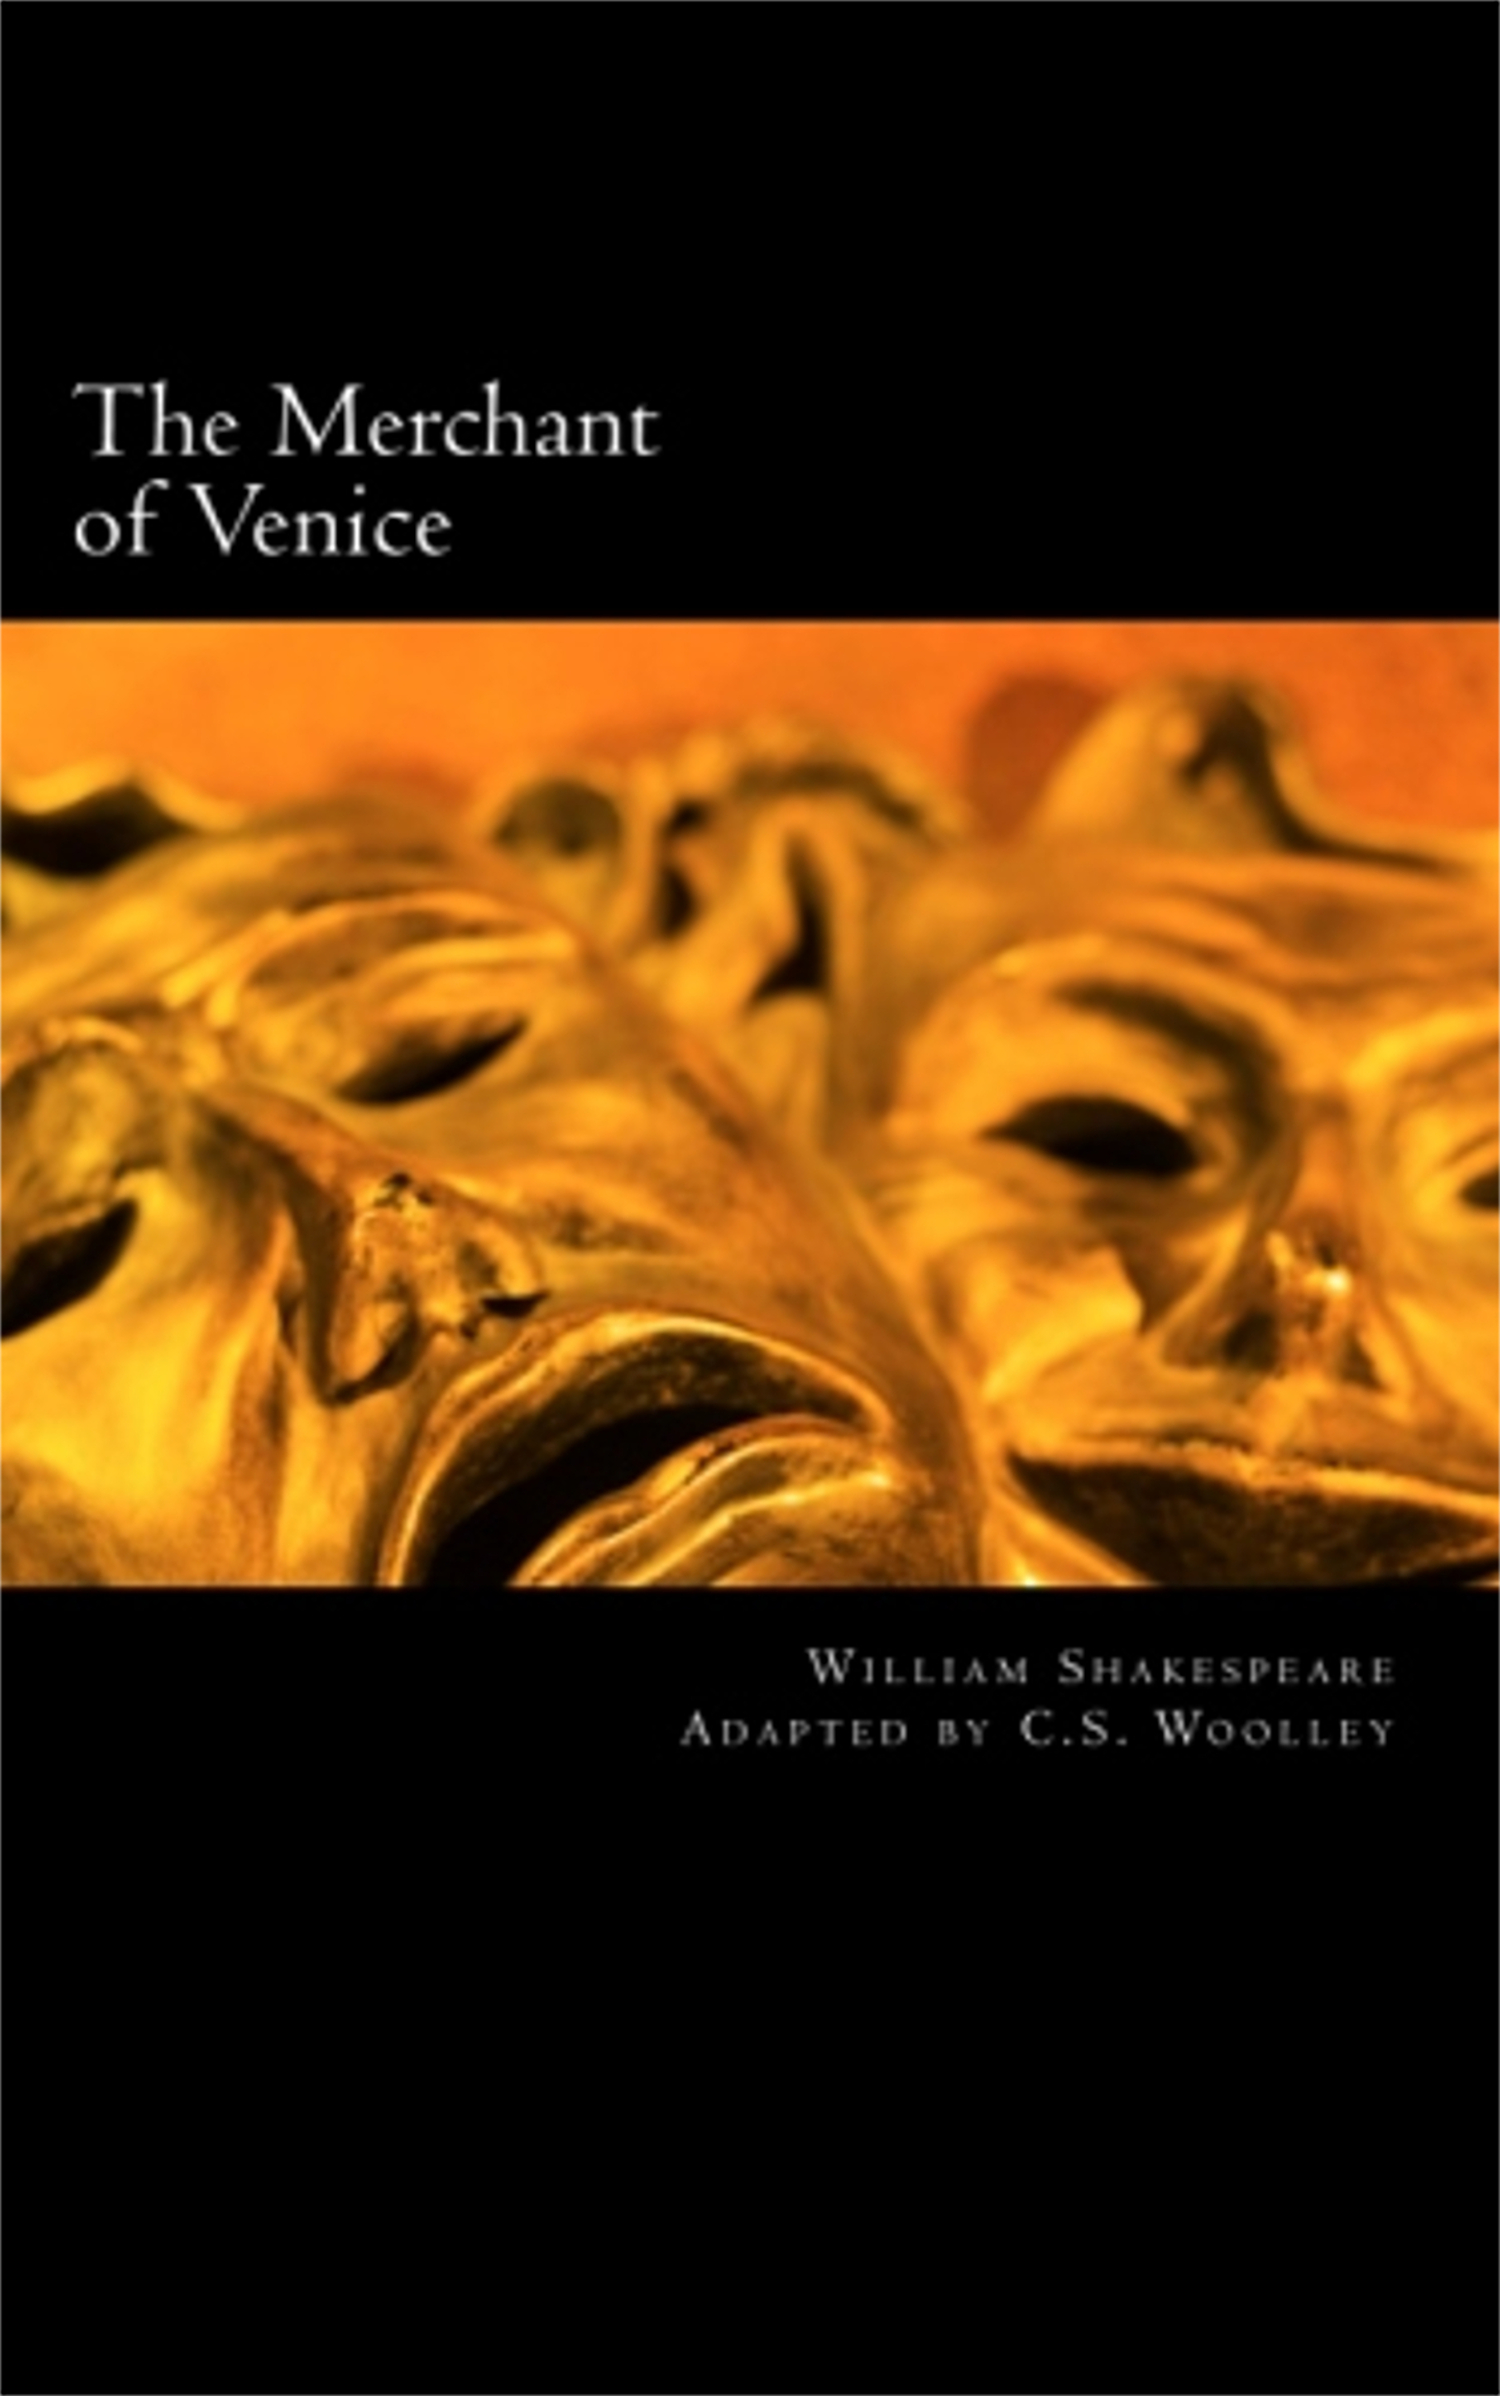 strong emotions in the merchant of venice love hate and jealousy Envy (from latin invidia) is an emotion which occurs when a person lacks another's superior quality, achievement, or possession and either desires it or wishes that the other lacked it bertrand russell said that envy was one of the most potent causes of unhappiness not only is the envious person rendered unhappy by his or her envy.